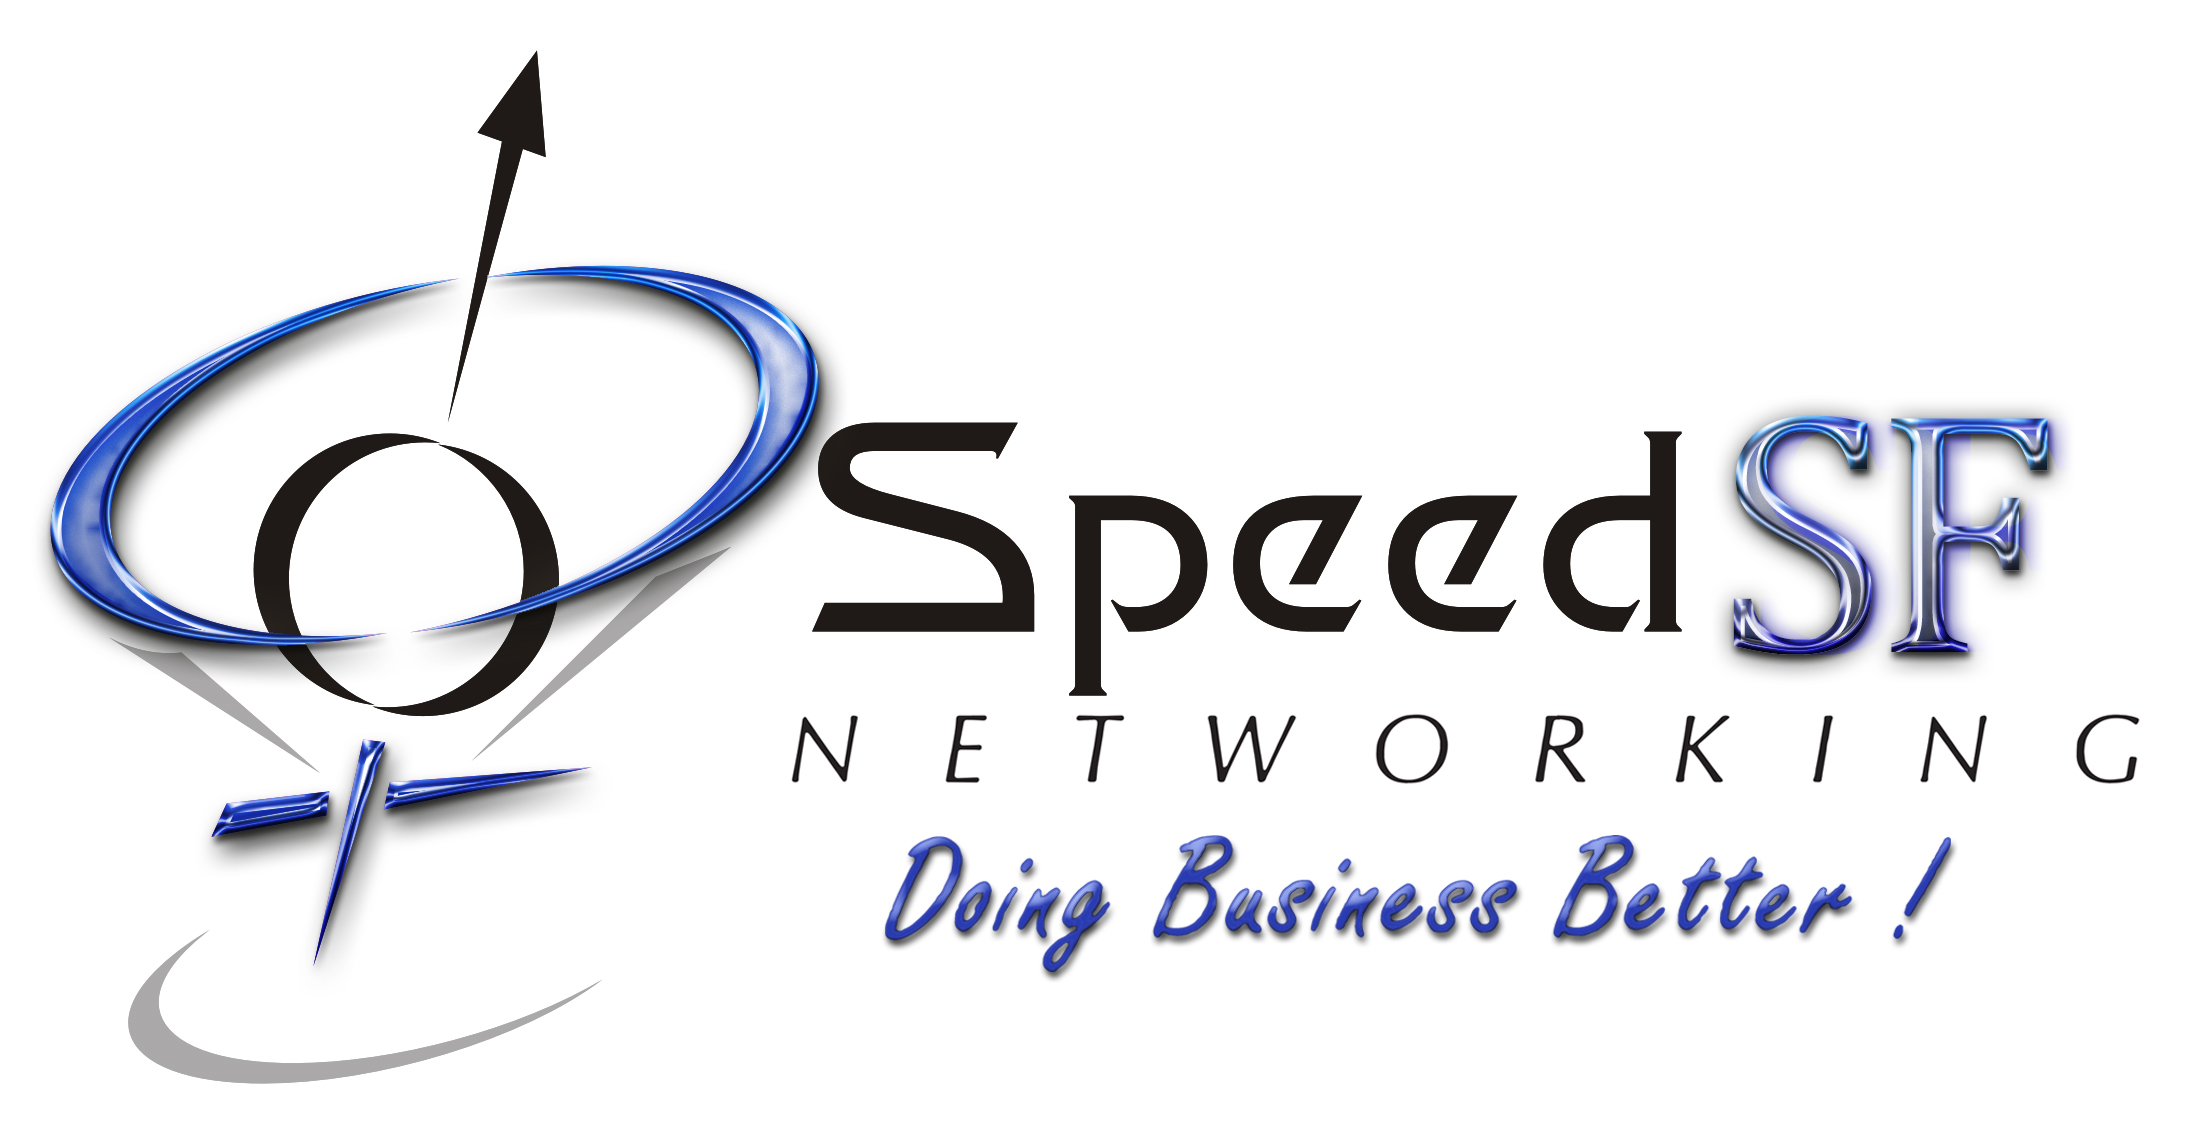 speedsf dating Speed sf track events have been hosting high performance driving events for over a decade all over california our speedsf staff is friendly and includes experienced track instructors, drivers and current race professionals.